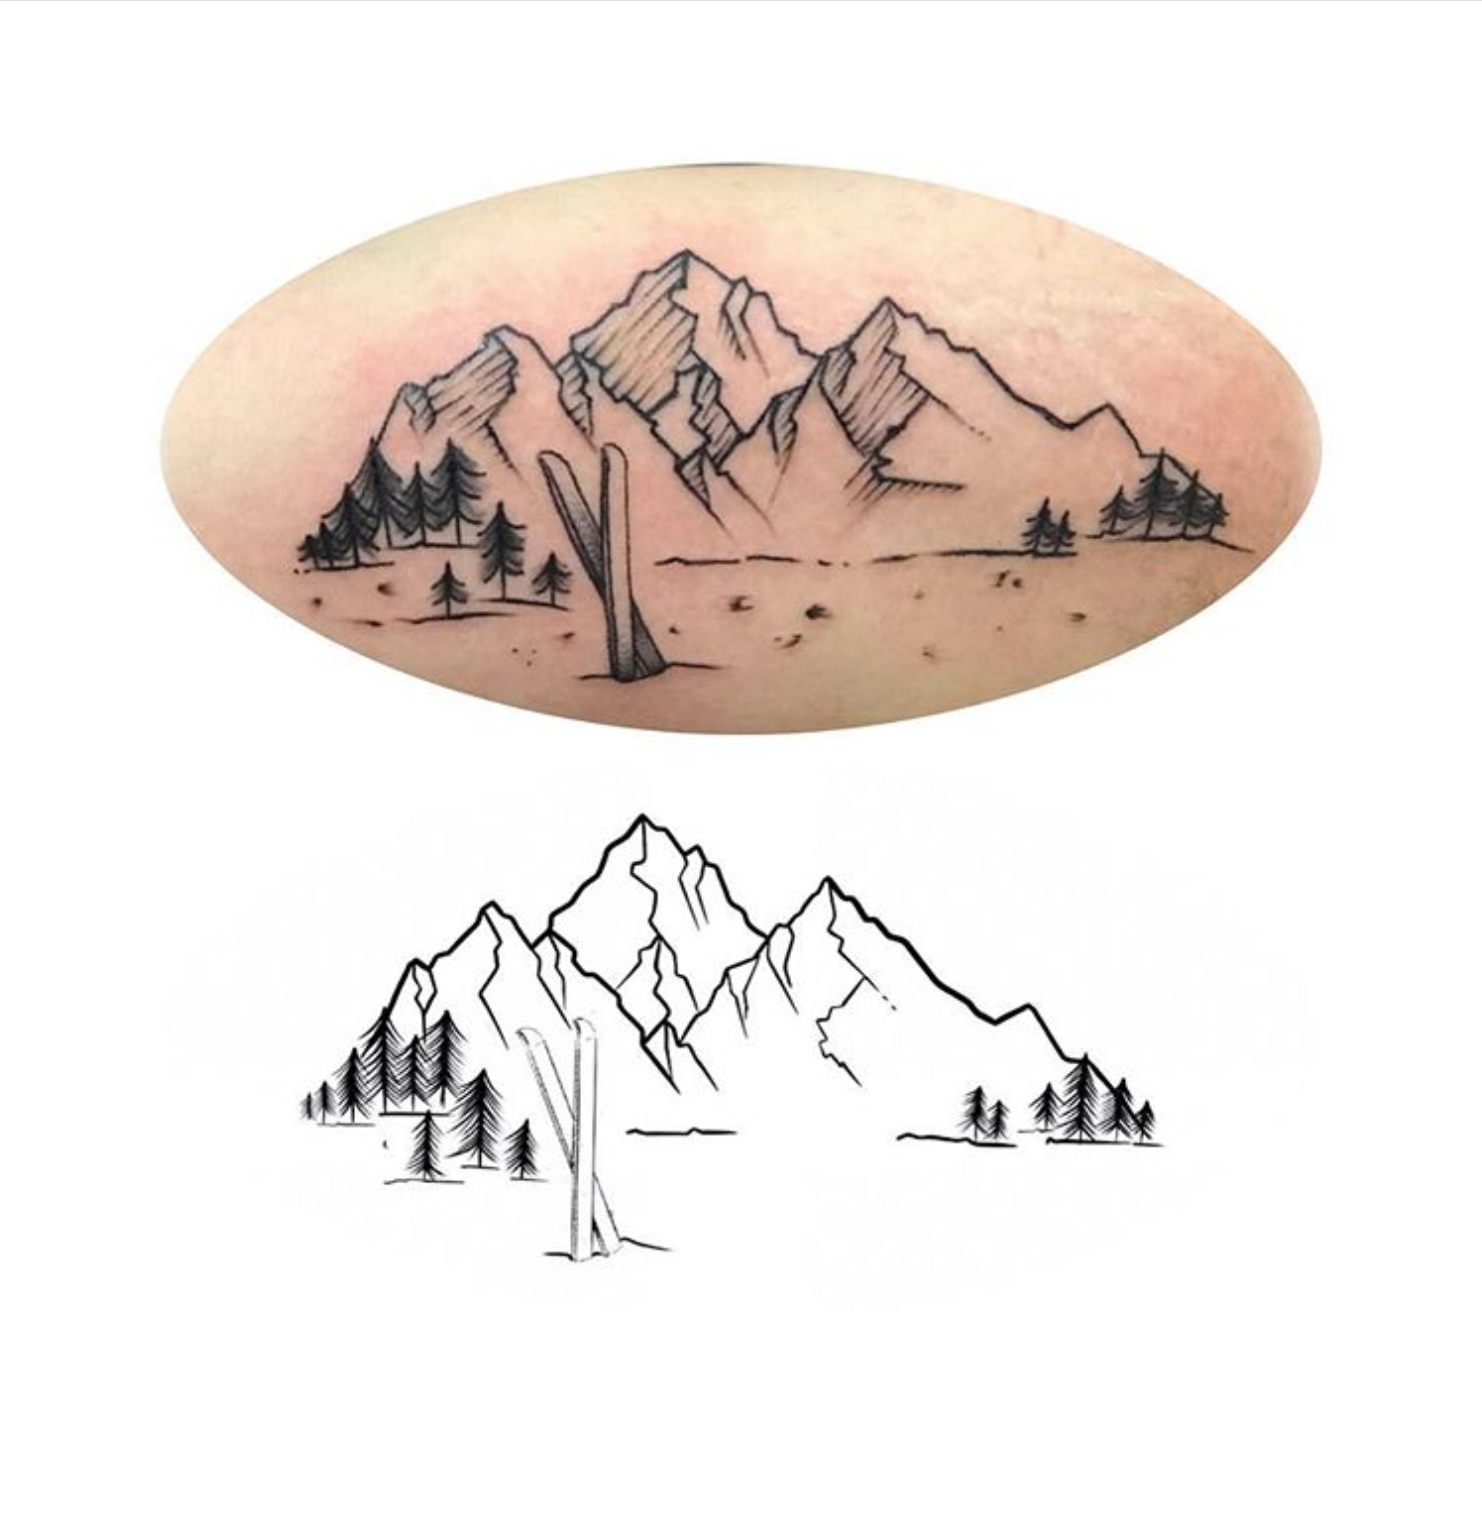 Mountain Sketch / Tattoo by Rosa Pérez